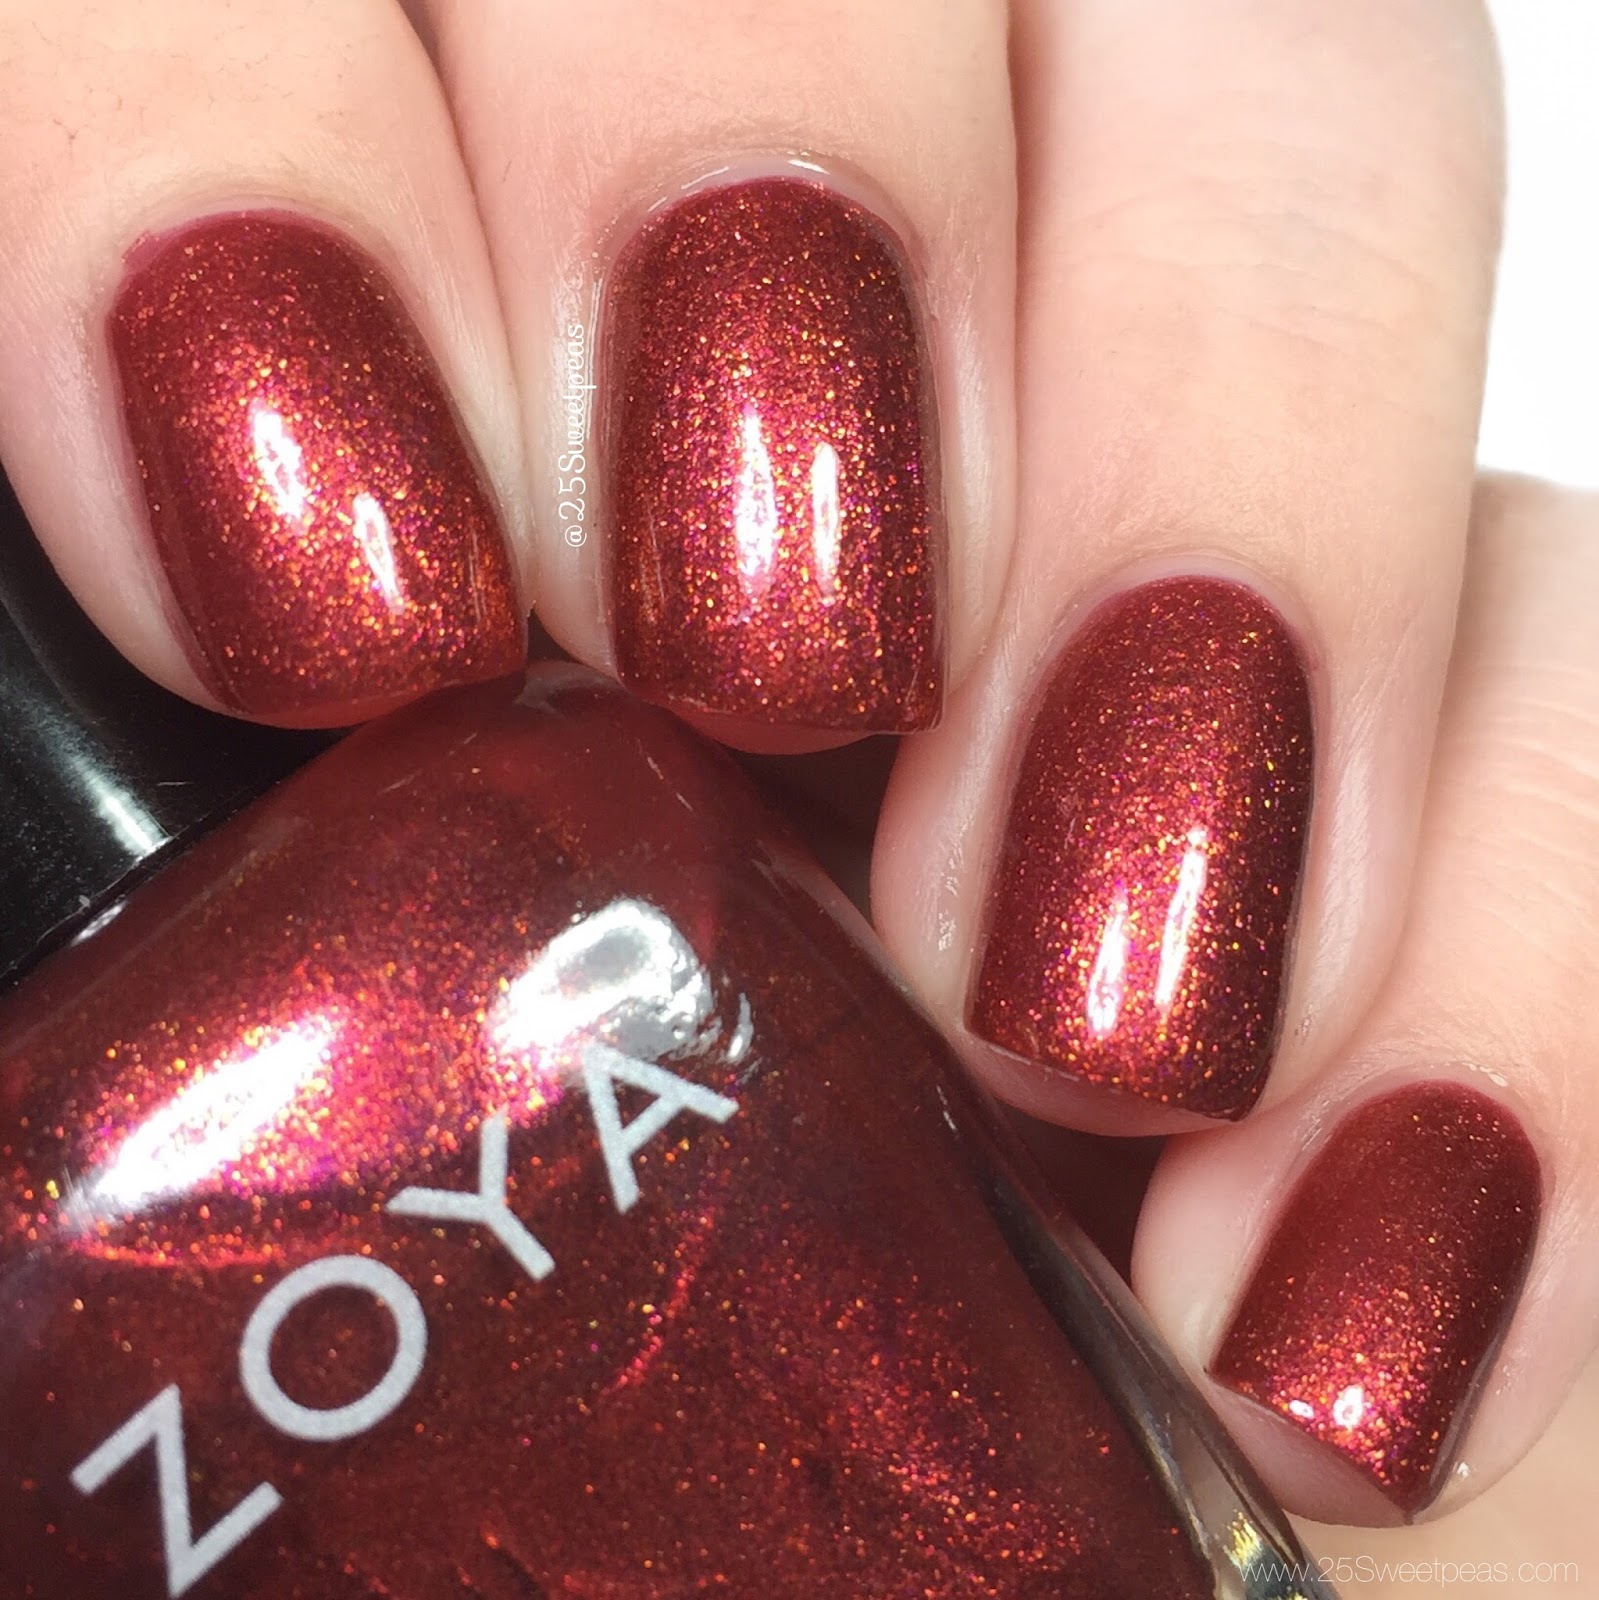 Zoya | Party Girl Swatch and Review + Live Swatch Video - 25 Sweetpeas